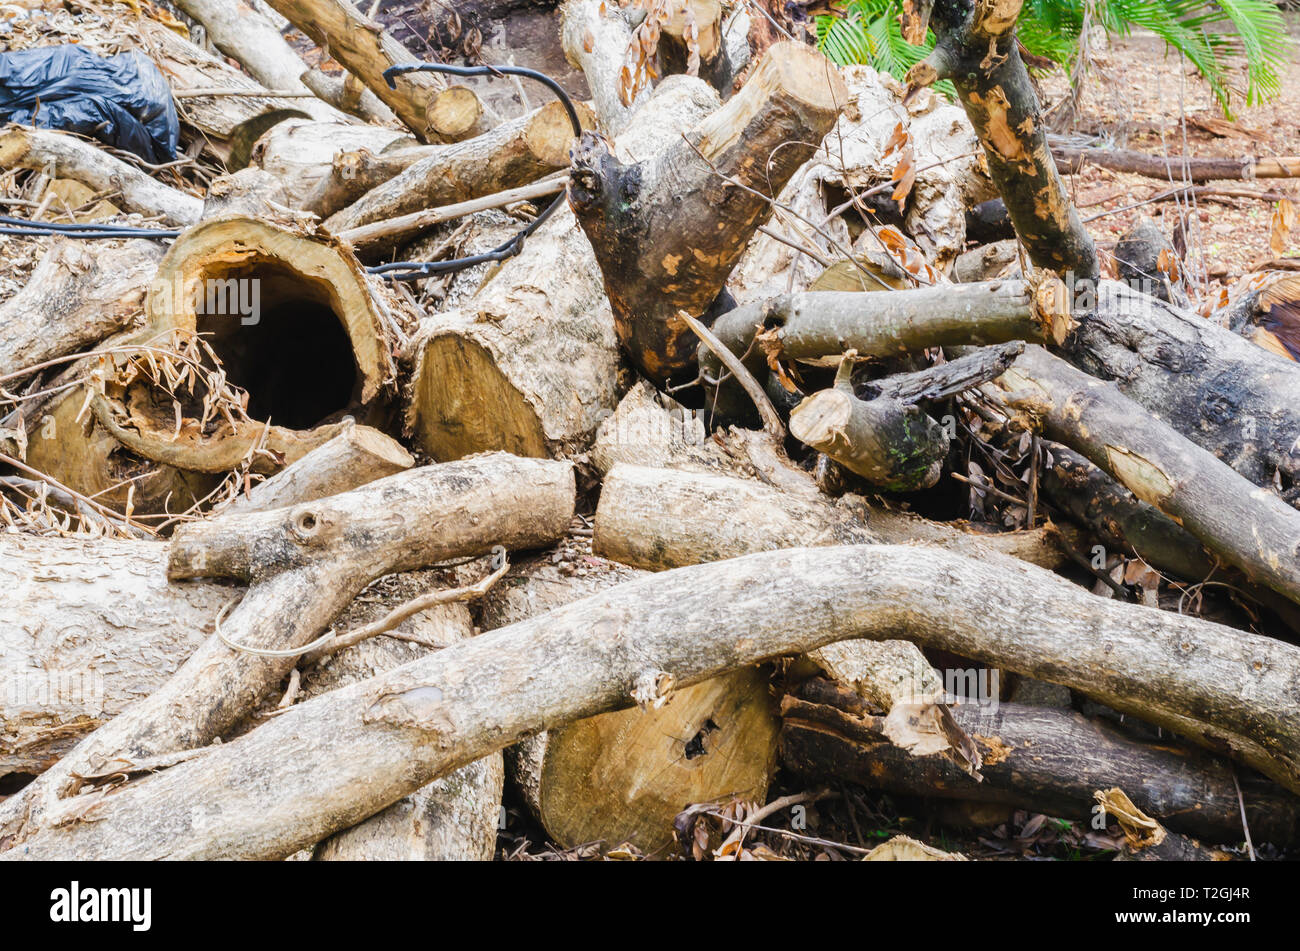 tree felled stacked like logs to cultivate and build - Stock Image